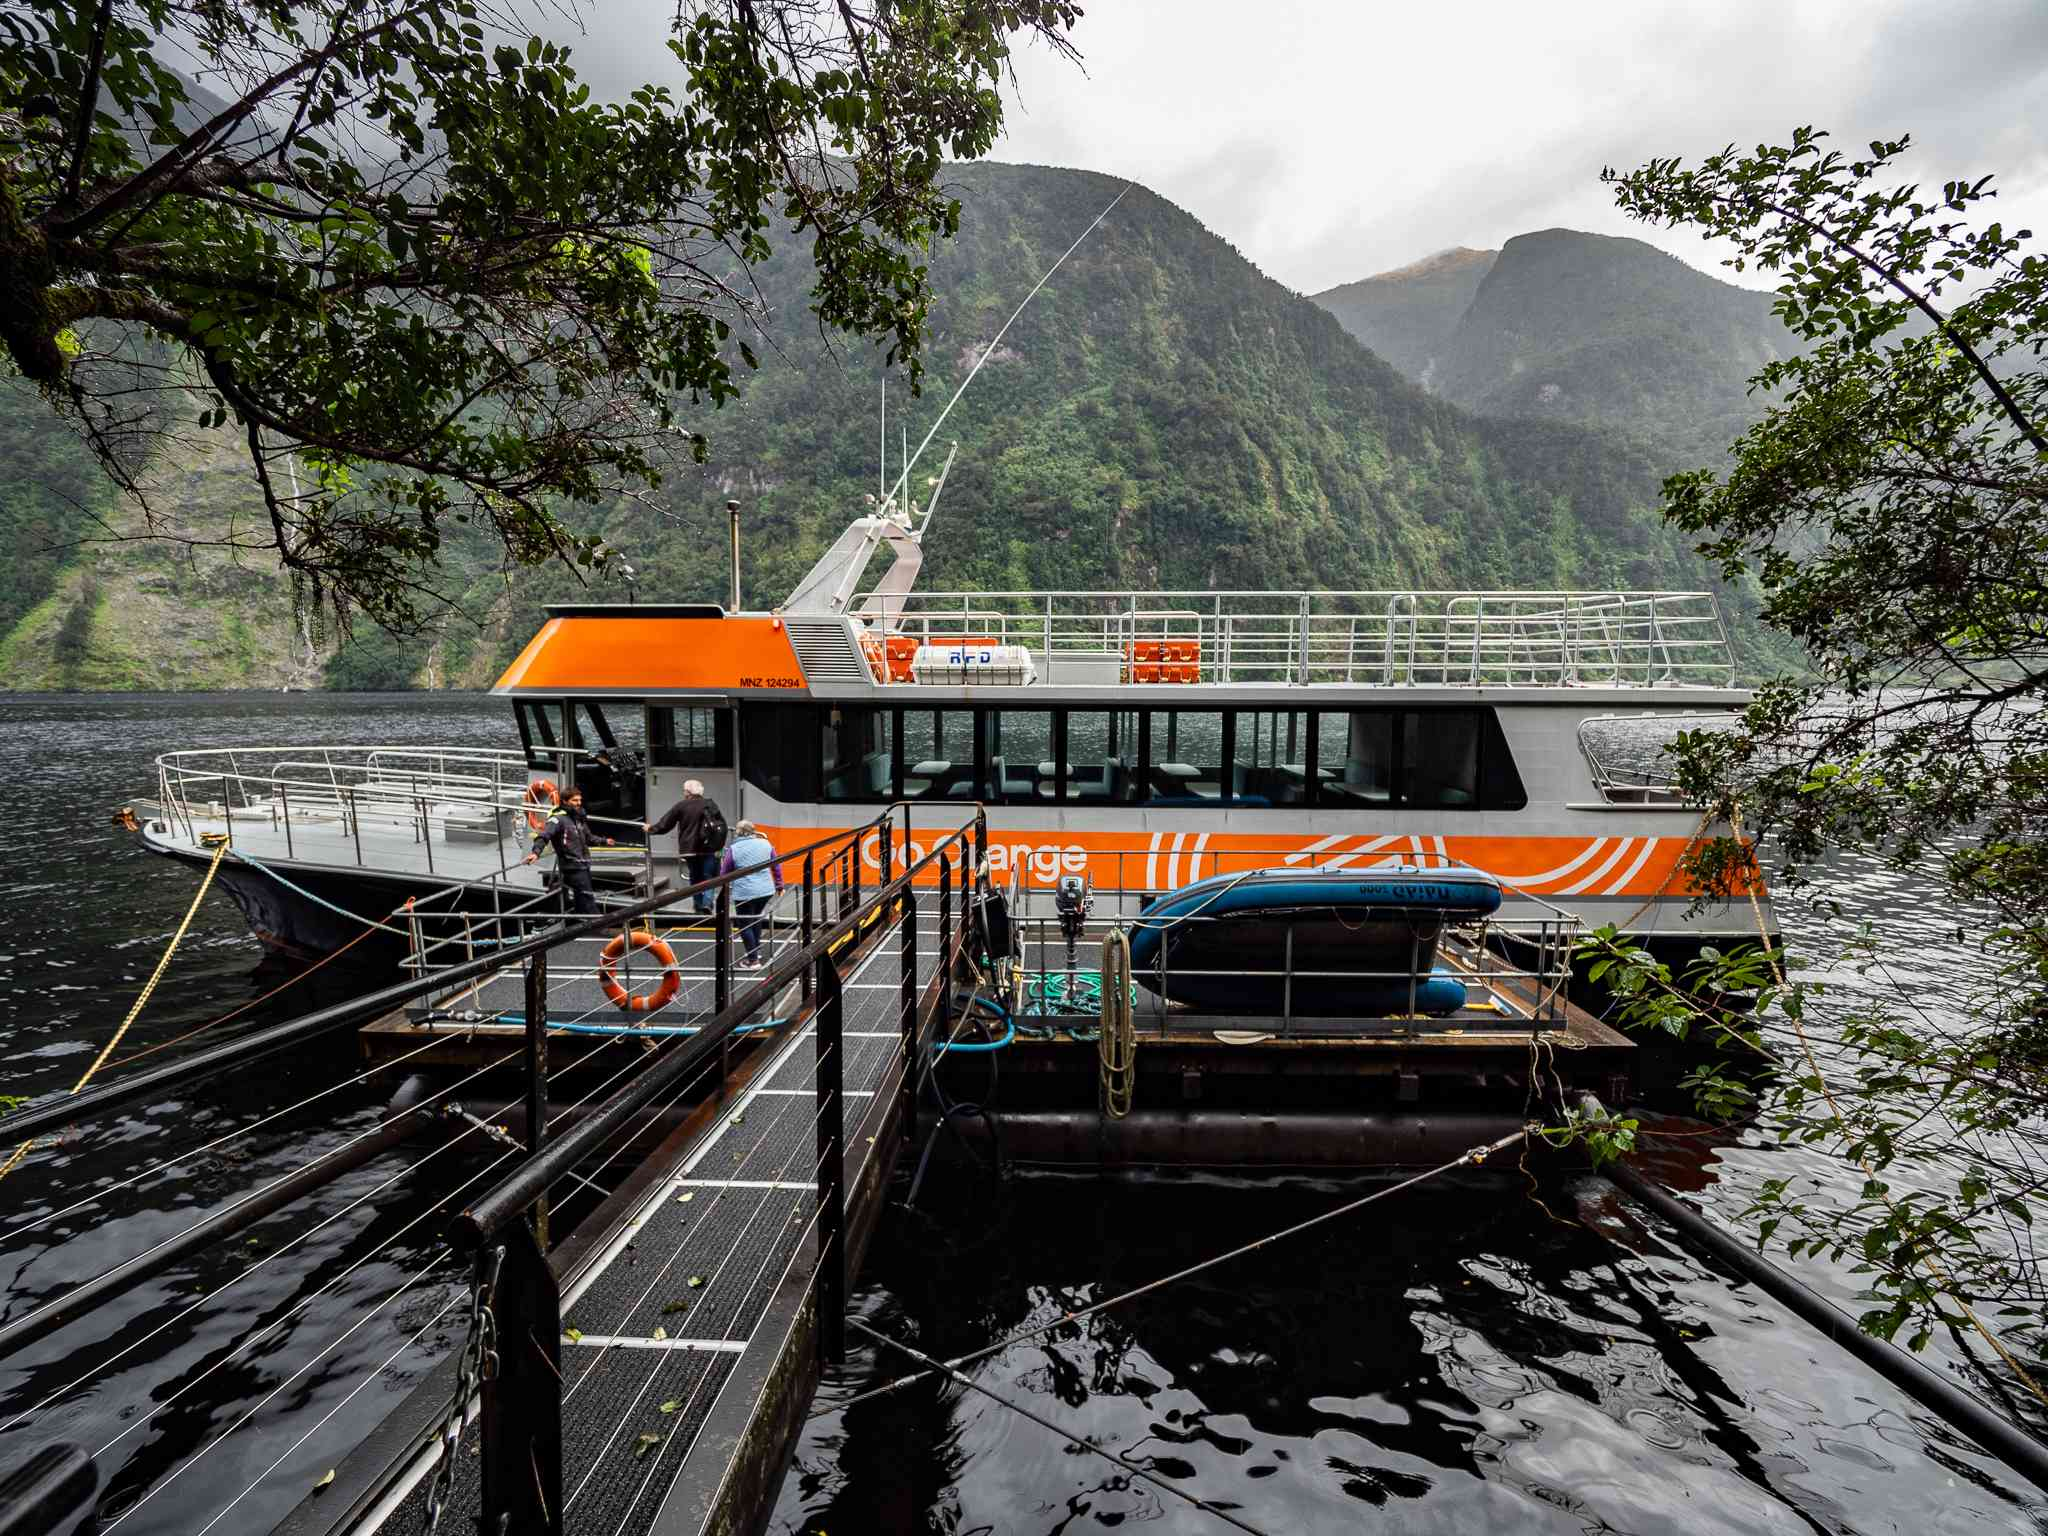 doubtful sound cruise, doubtful sound, go orange, go orange doubtful sound, doubtful sound day cruise, fiordland cruises, doubtful sound tour, doubtful sound day trip, doubtful sound cruise operators